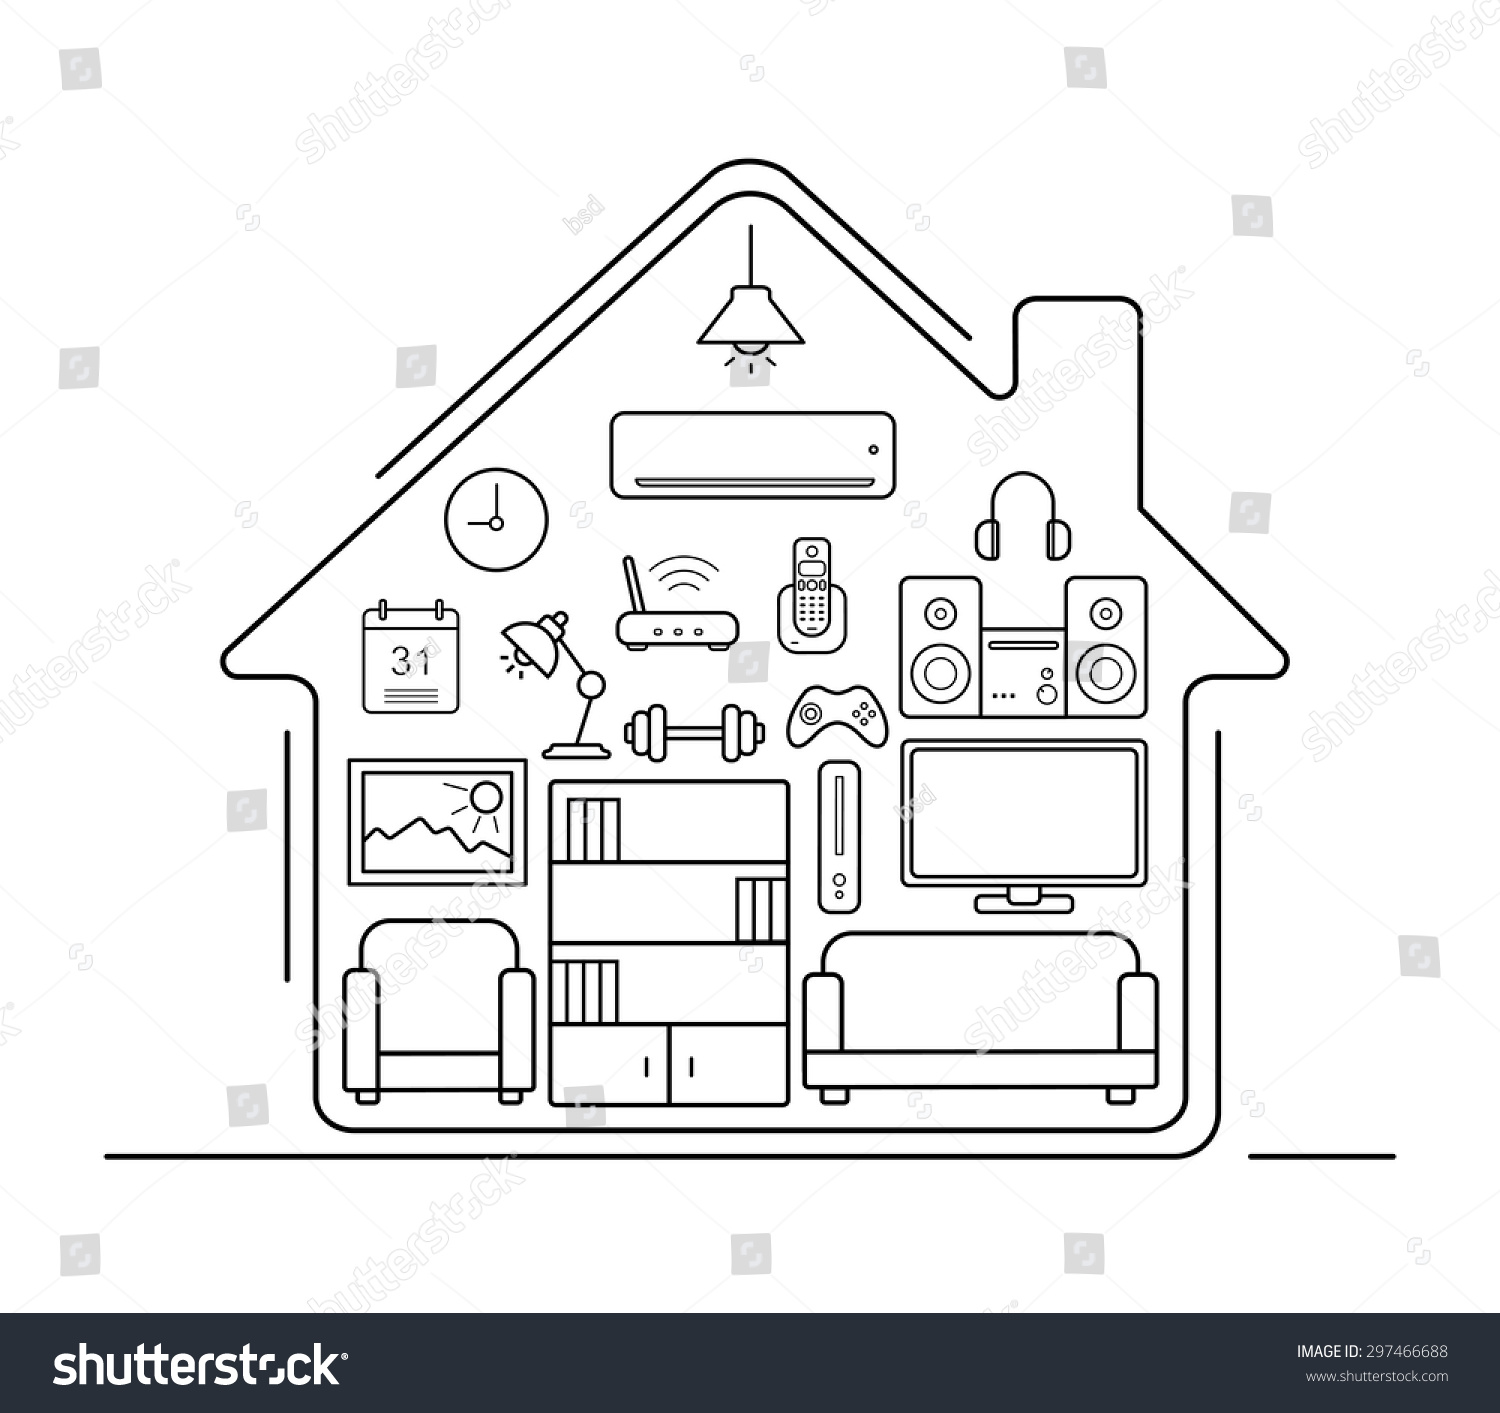 Modern Smart Home Thin Line Art Icons Interior With Electronics And Furniture Illustration